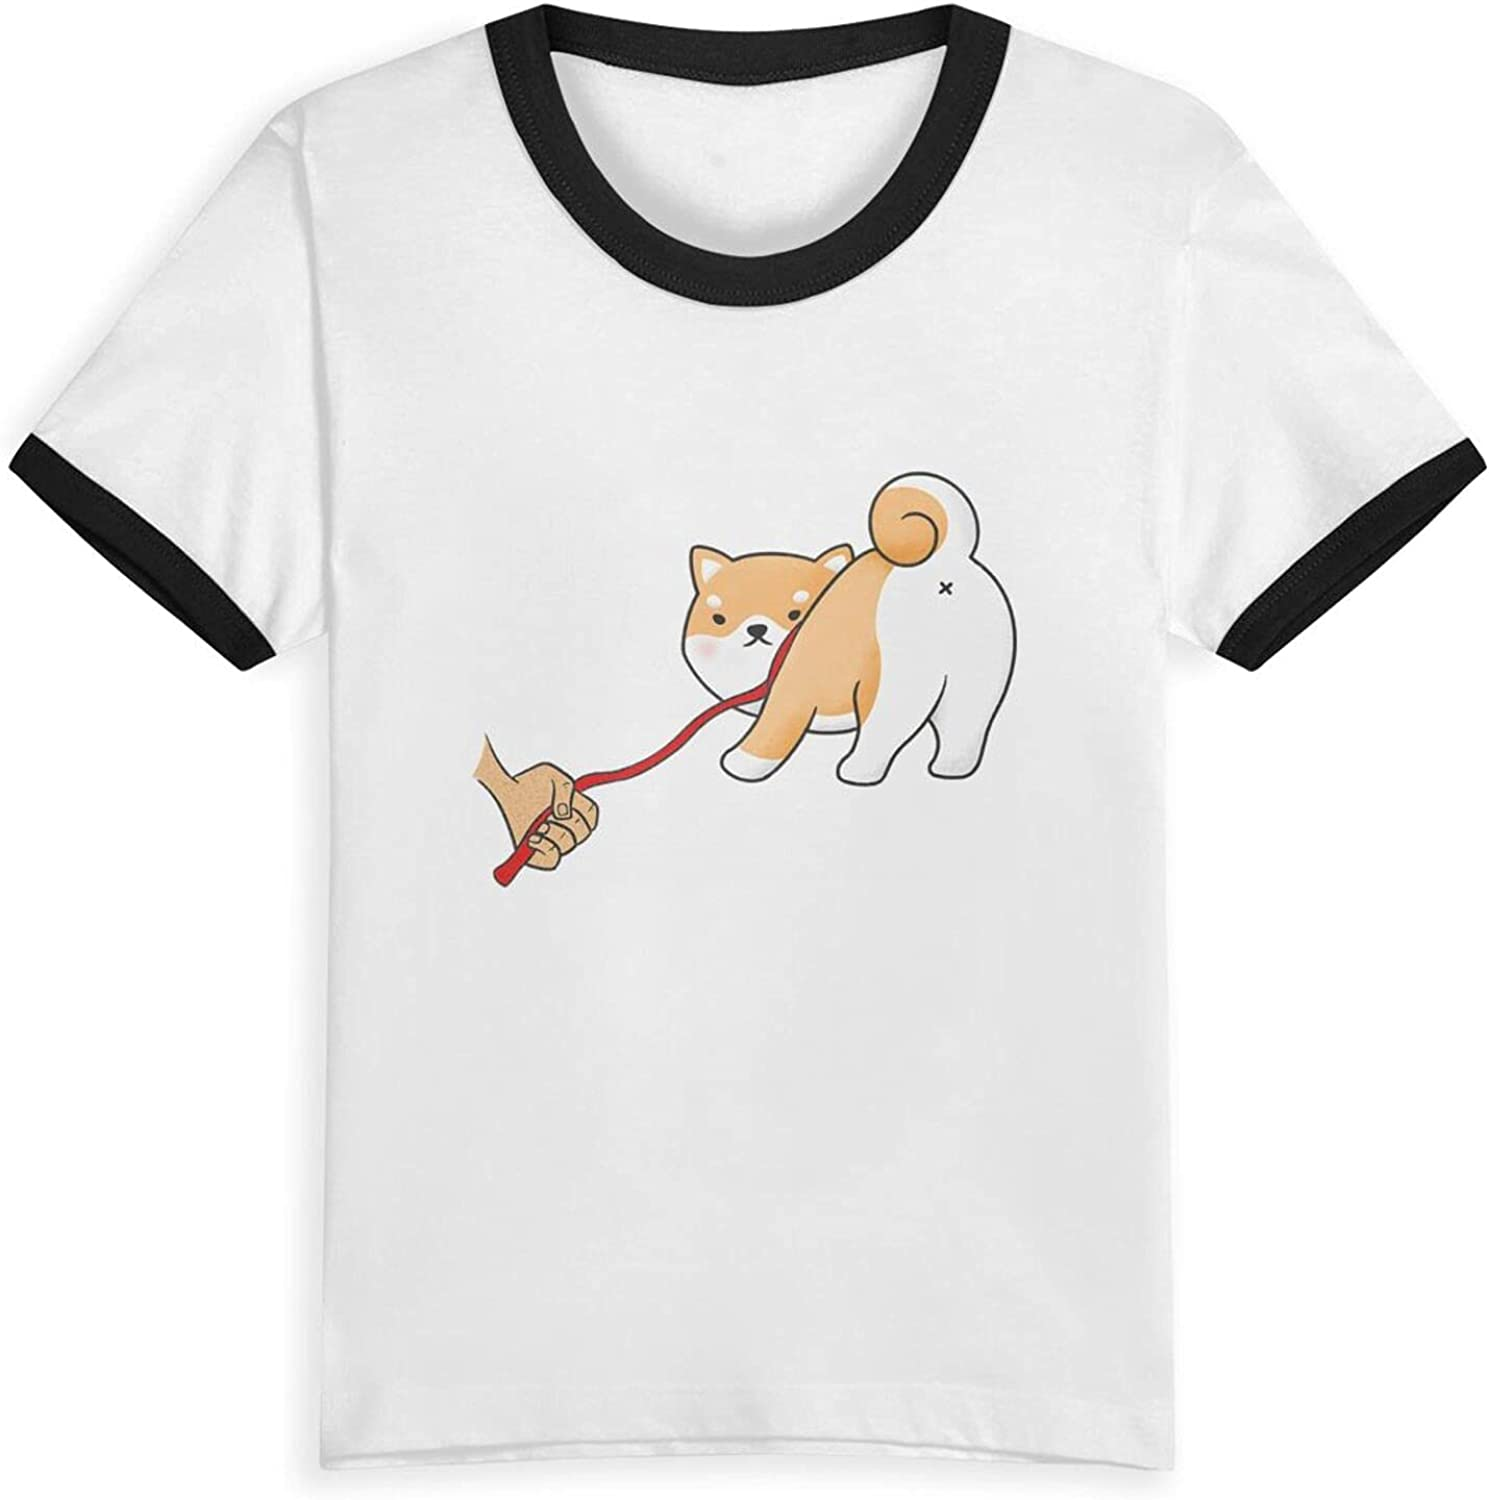 No Nope Reject Shiba Inu T-Shirts Novelty for Youth Tees with Cool Designs